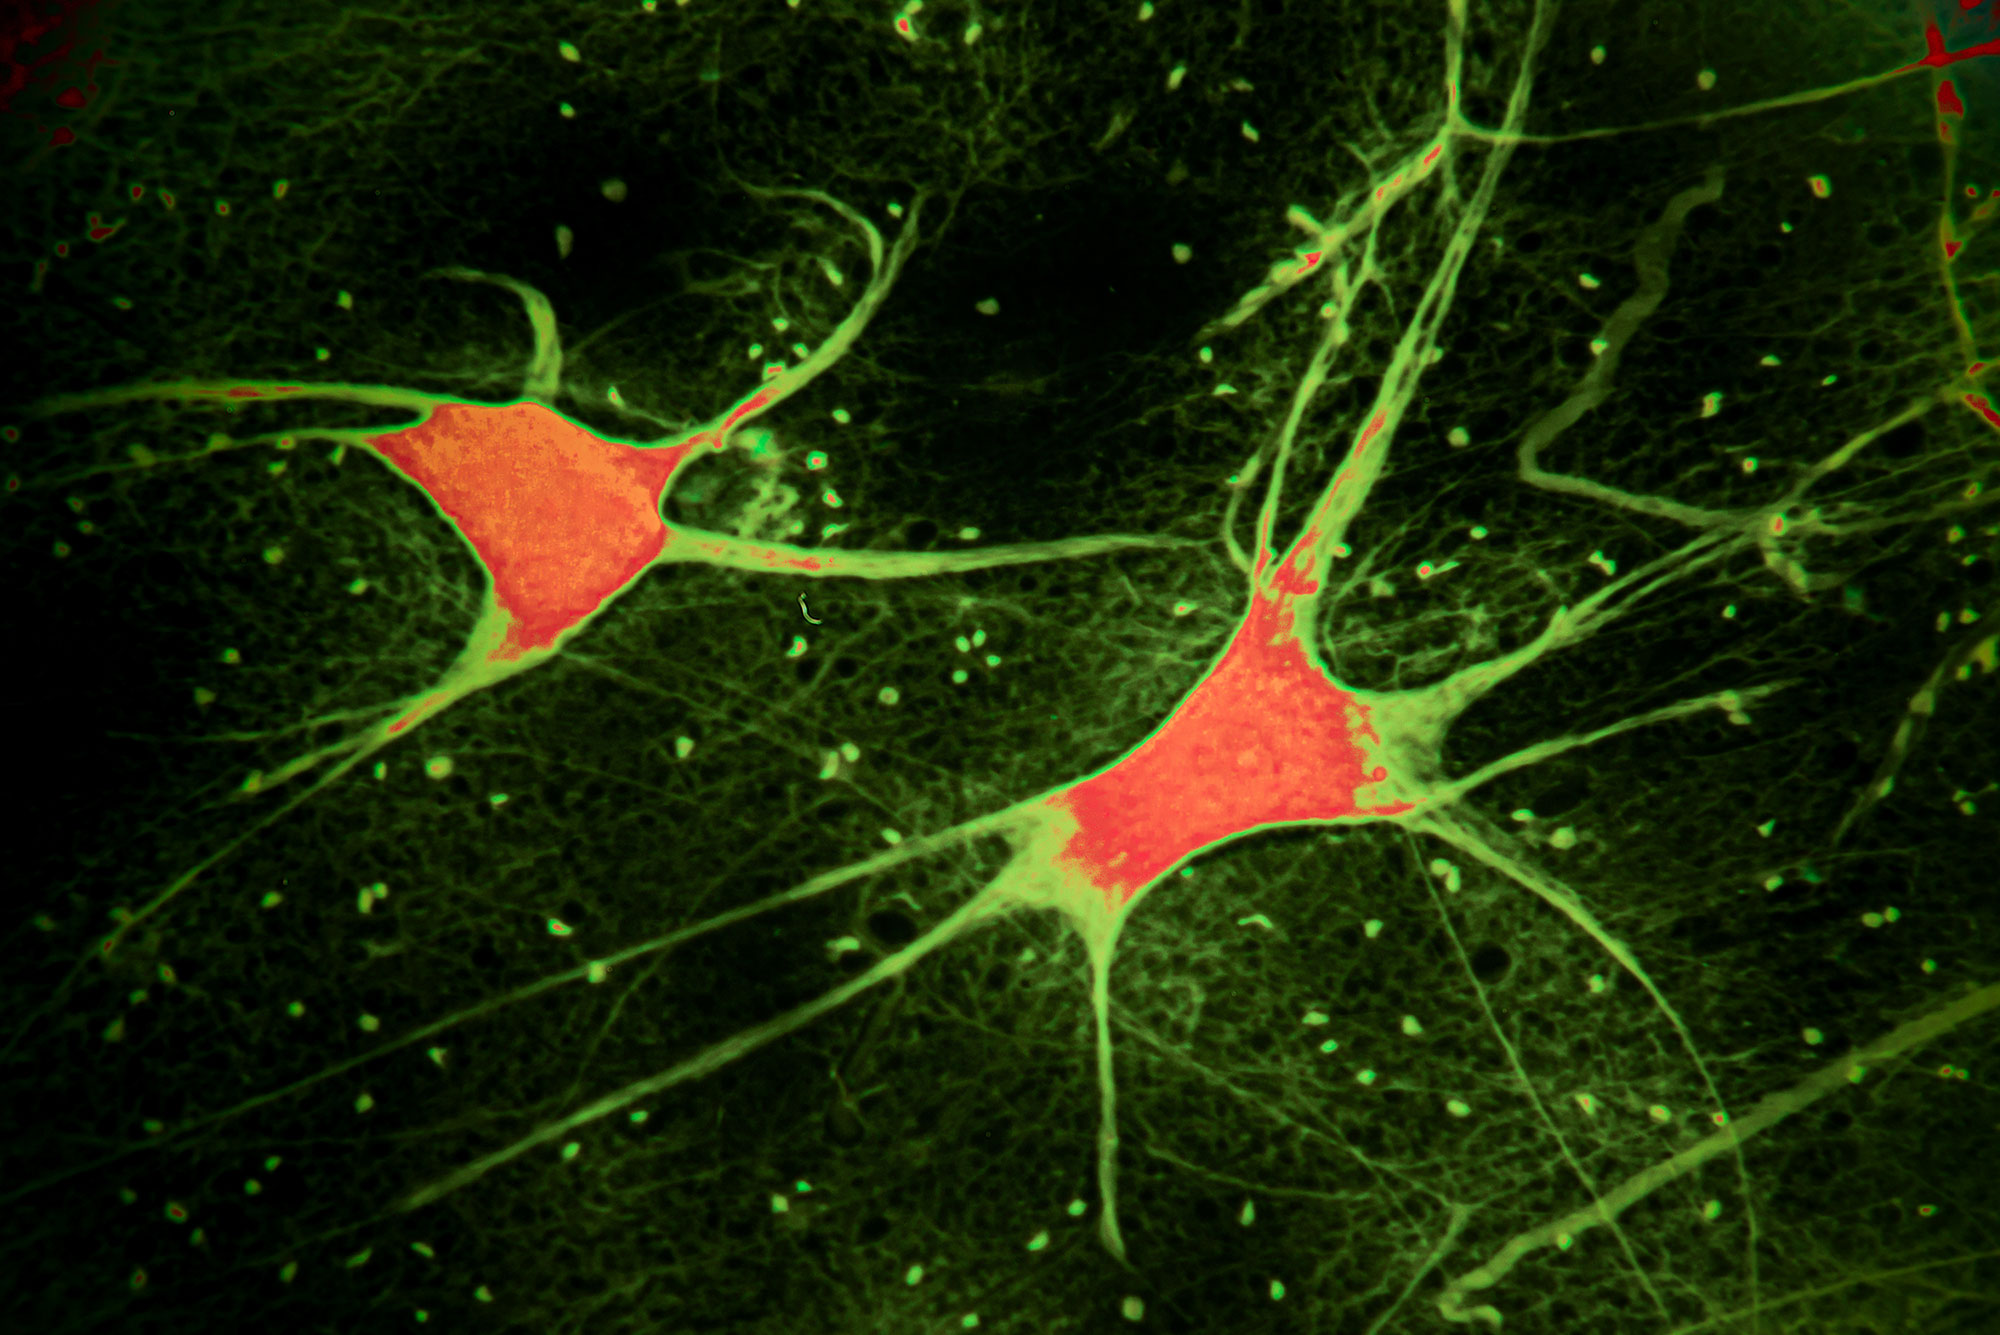 illustration of electrically active brain cells and neurons